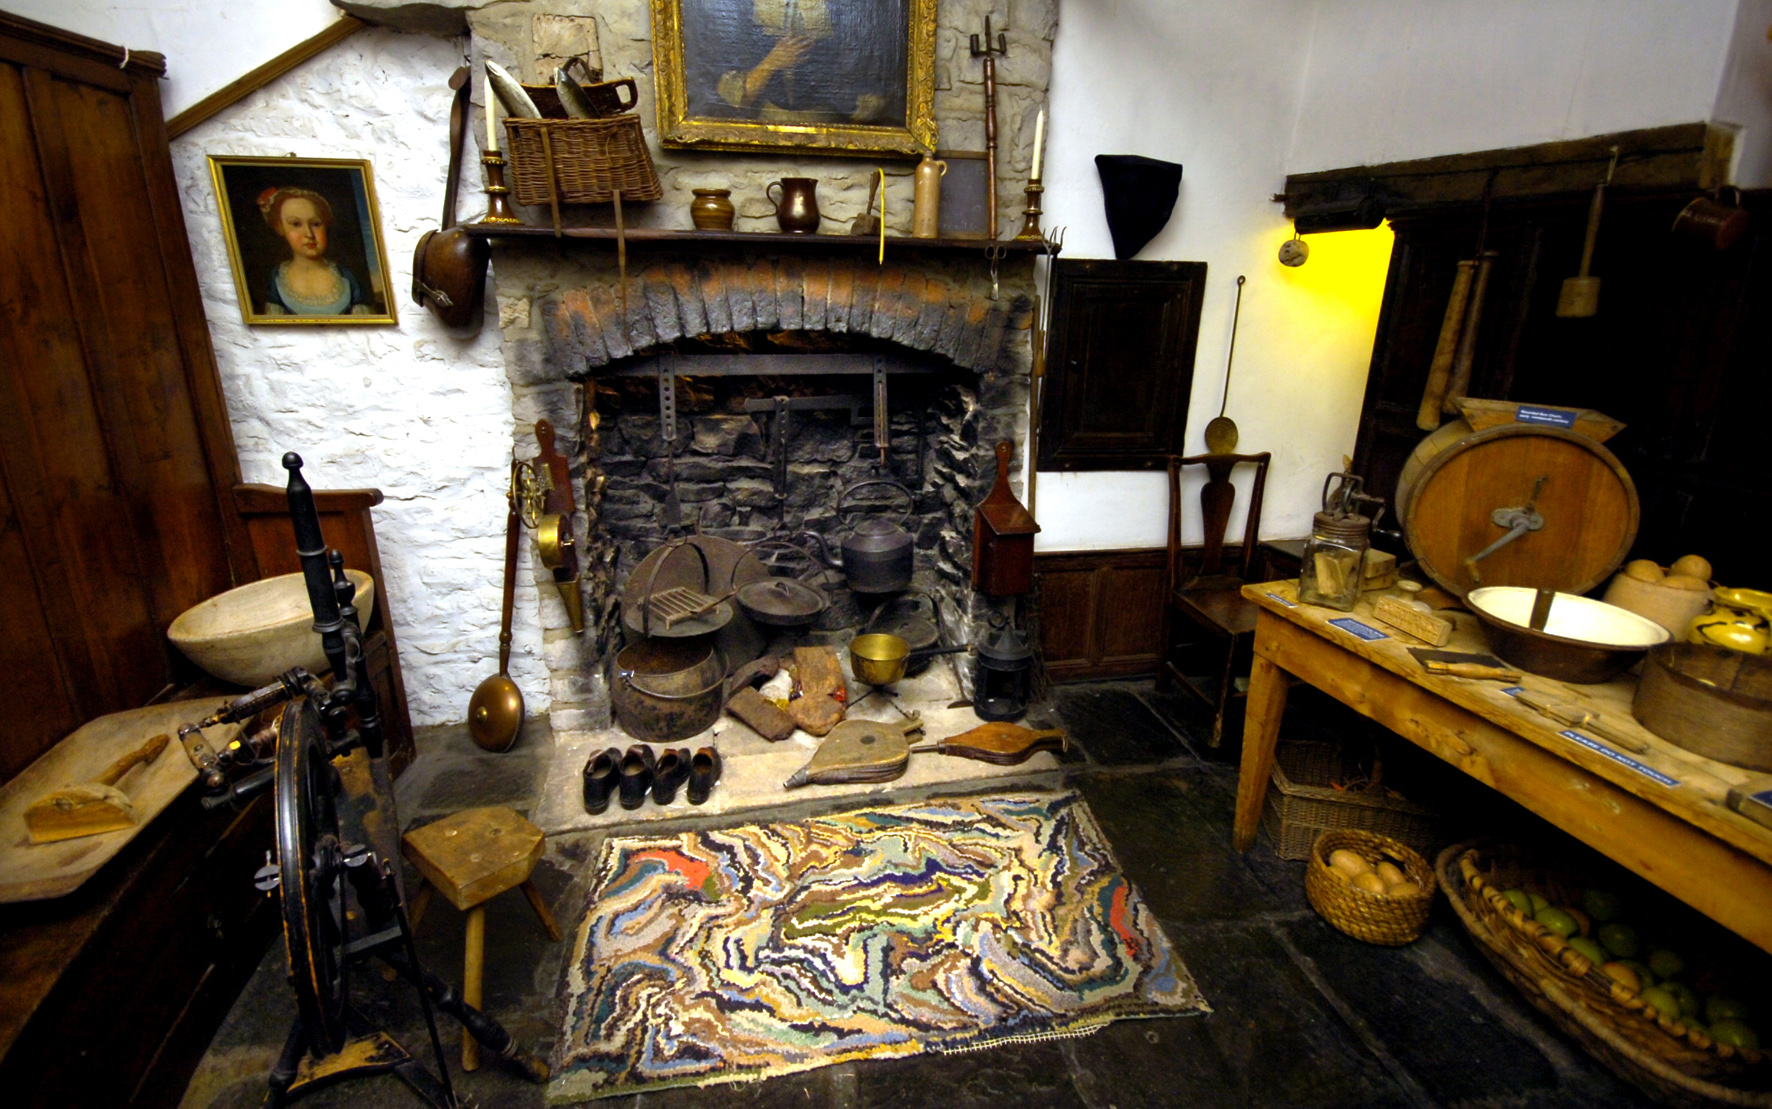 A typical Cumbrian farmhouse kitchen in the 18th centure at the Museum of Lakeland Life and Industry Kendal